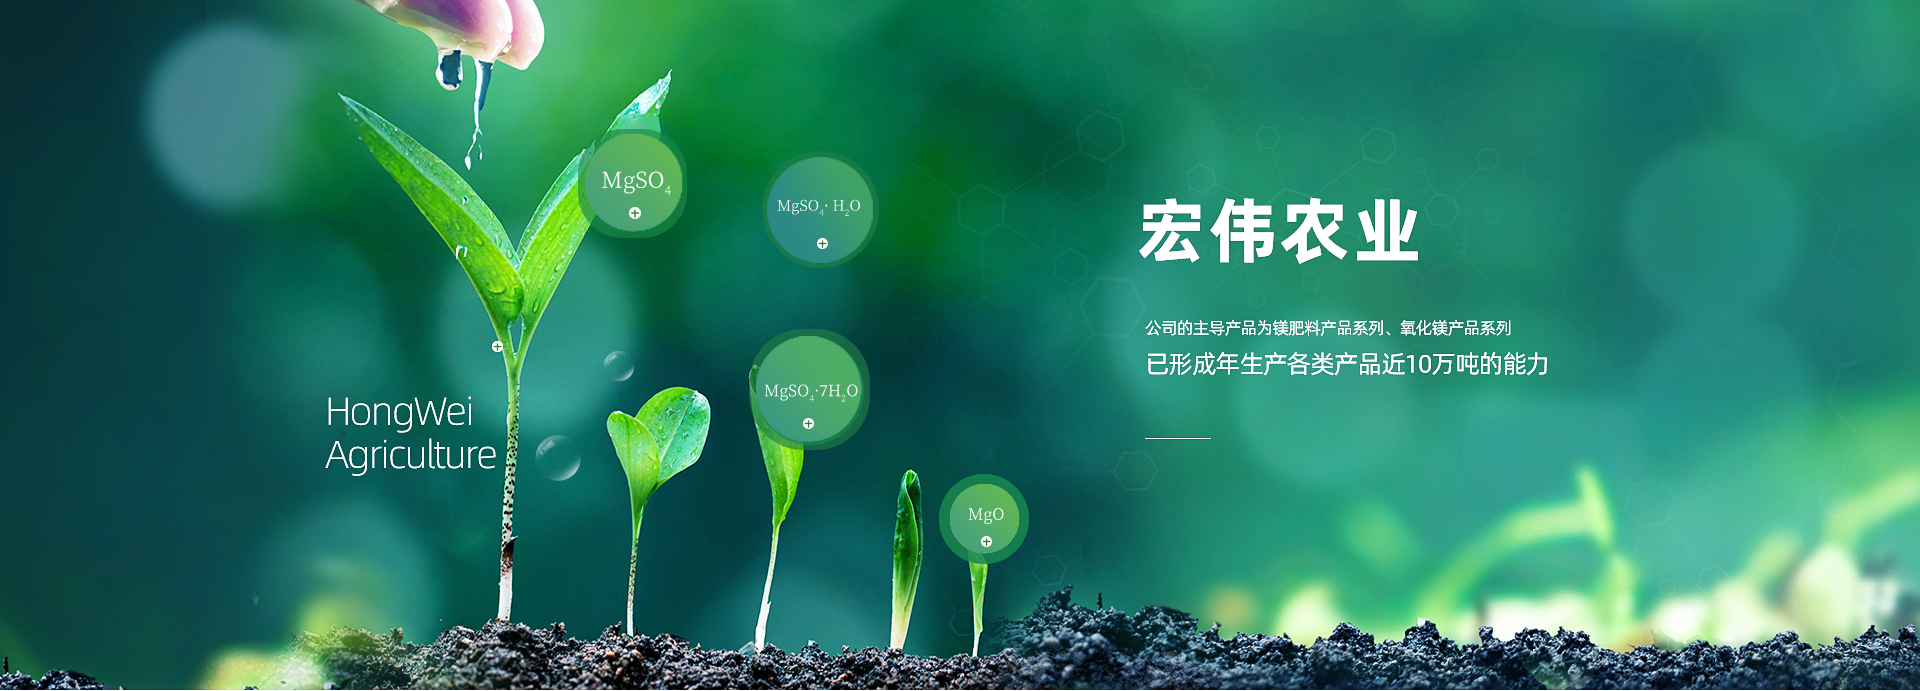 http://www.agri-hongwei.com/data/upload/201912/20191216120131_652.jpg